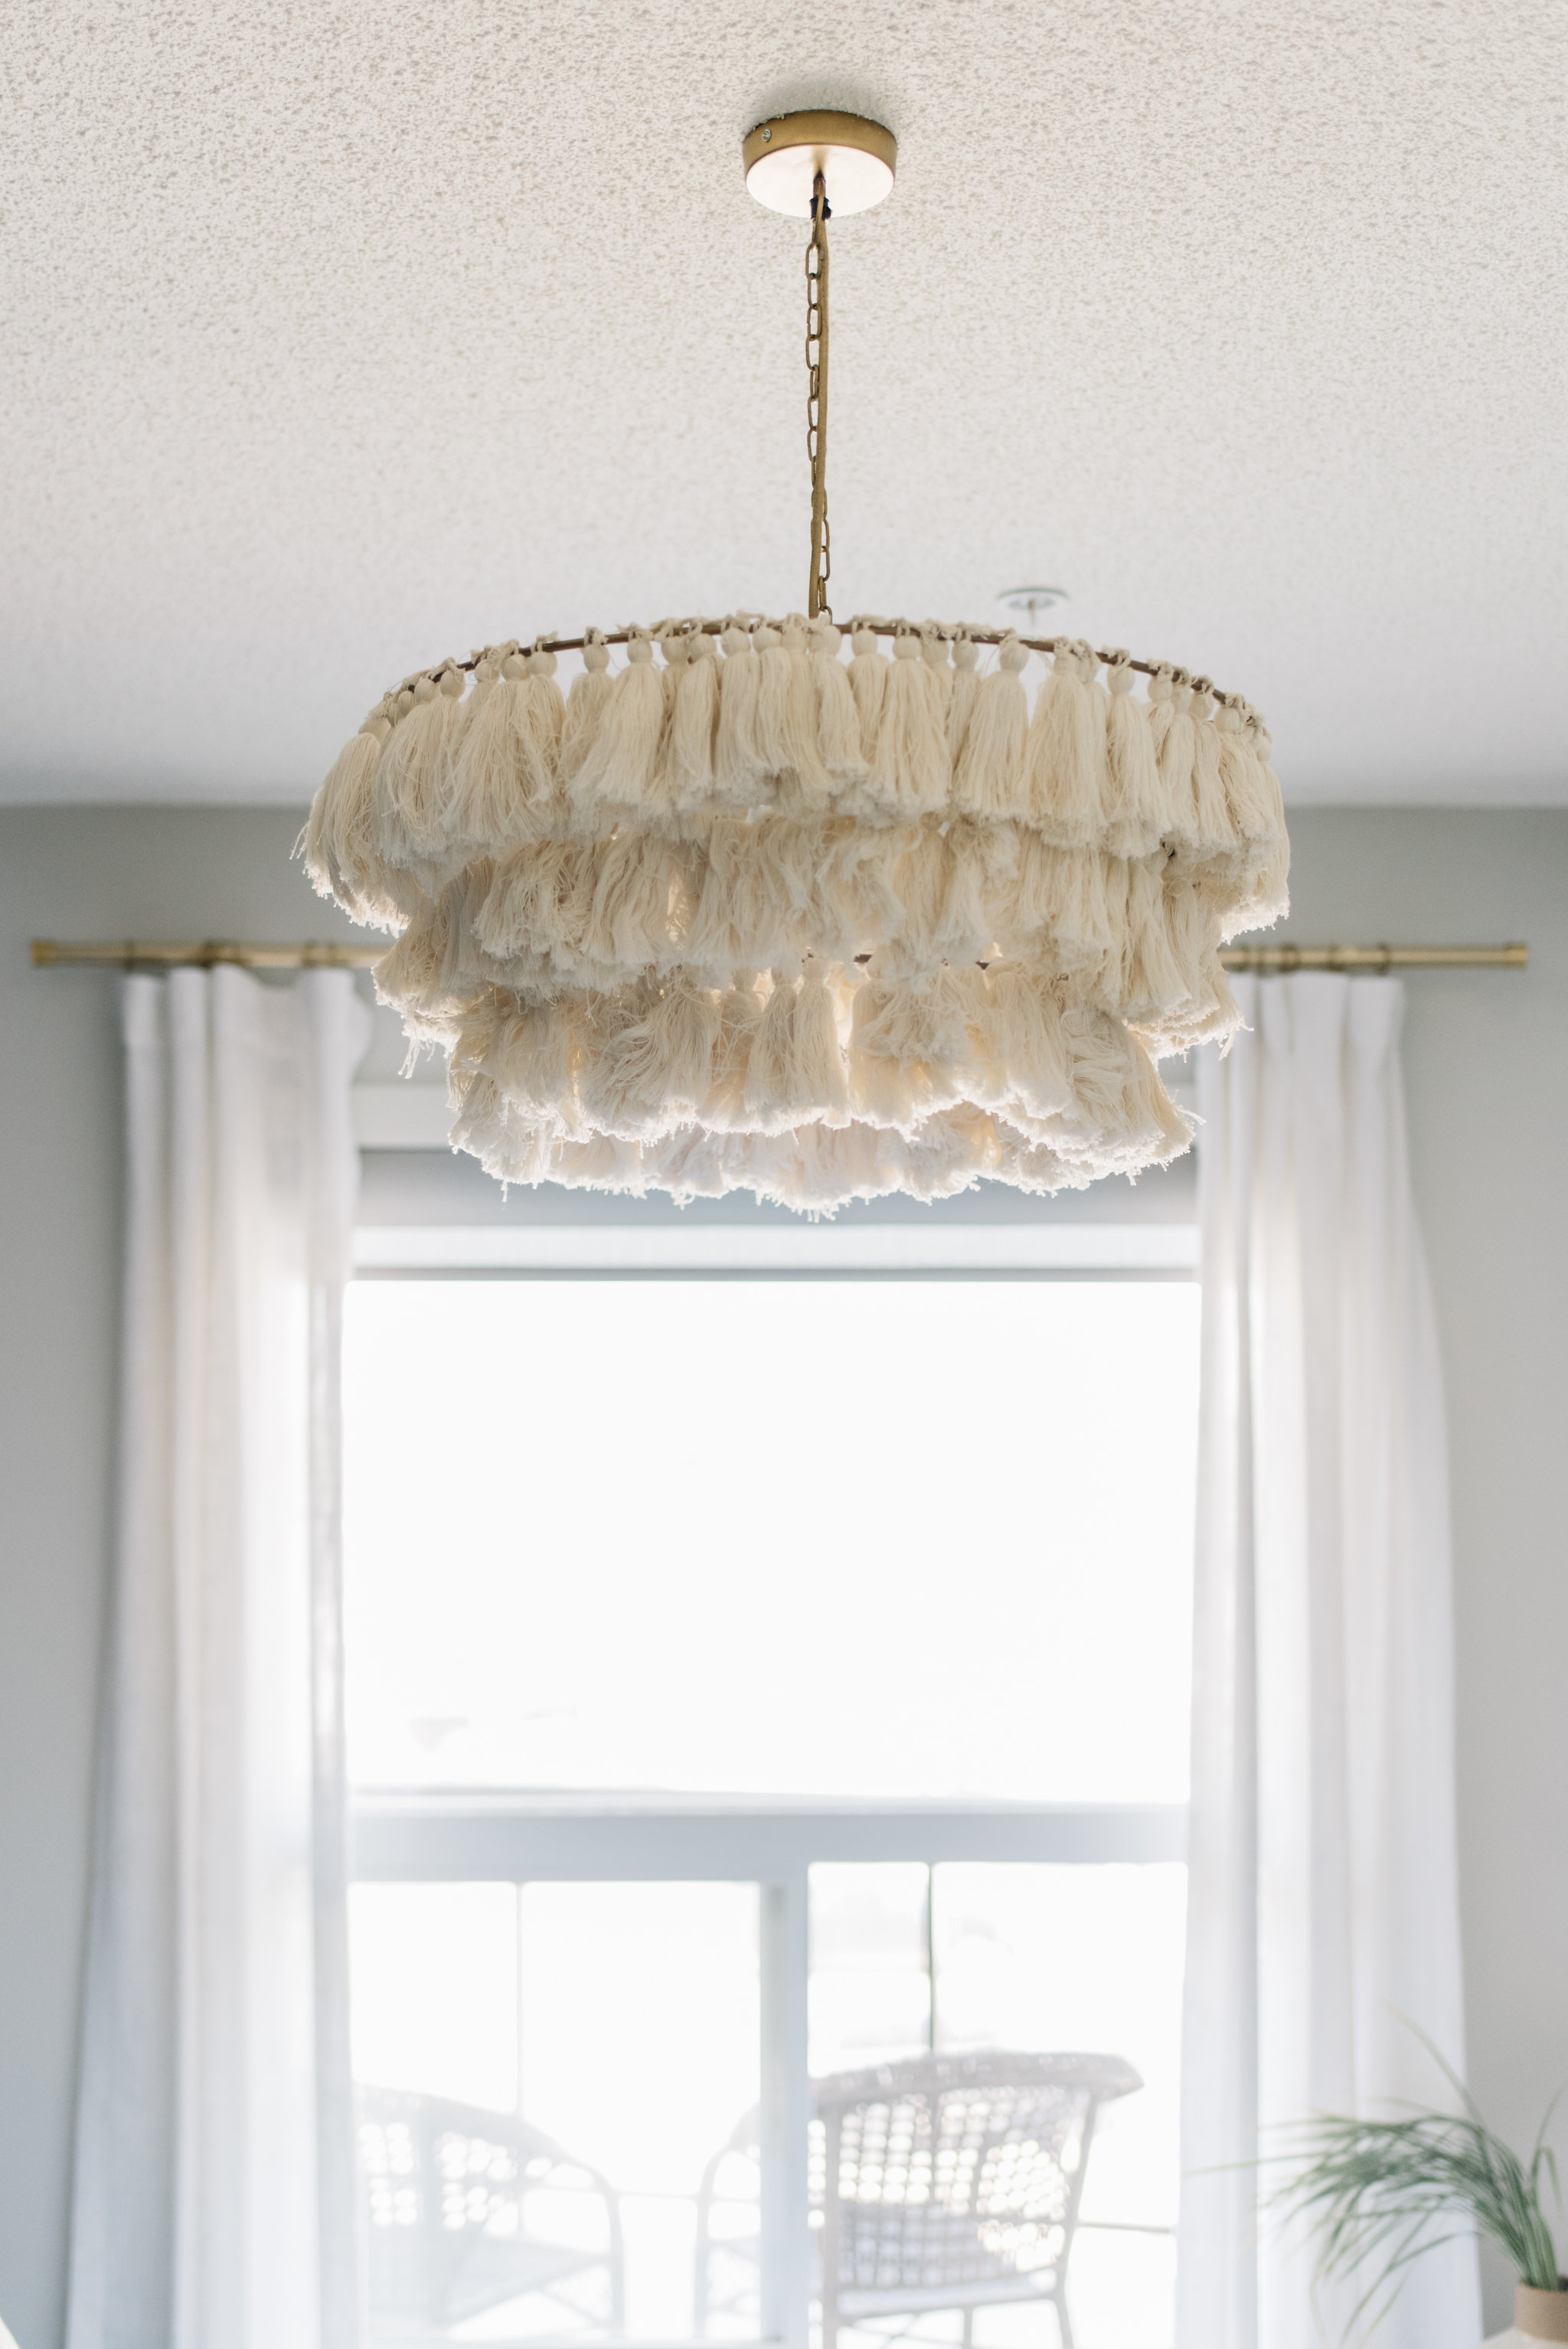 tassel light fixture, jungalow pendant